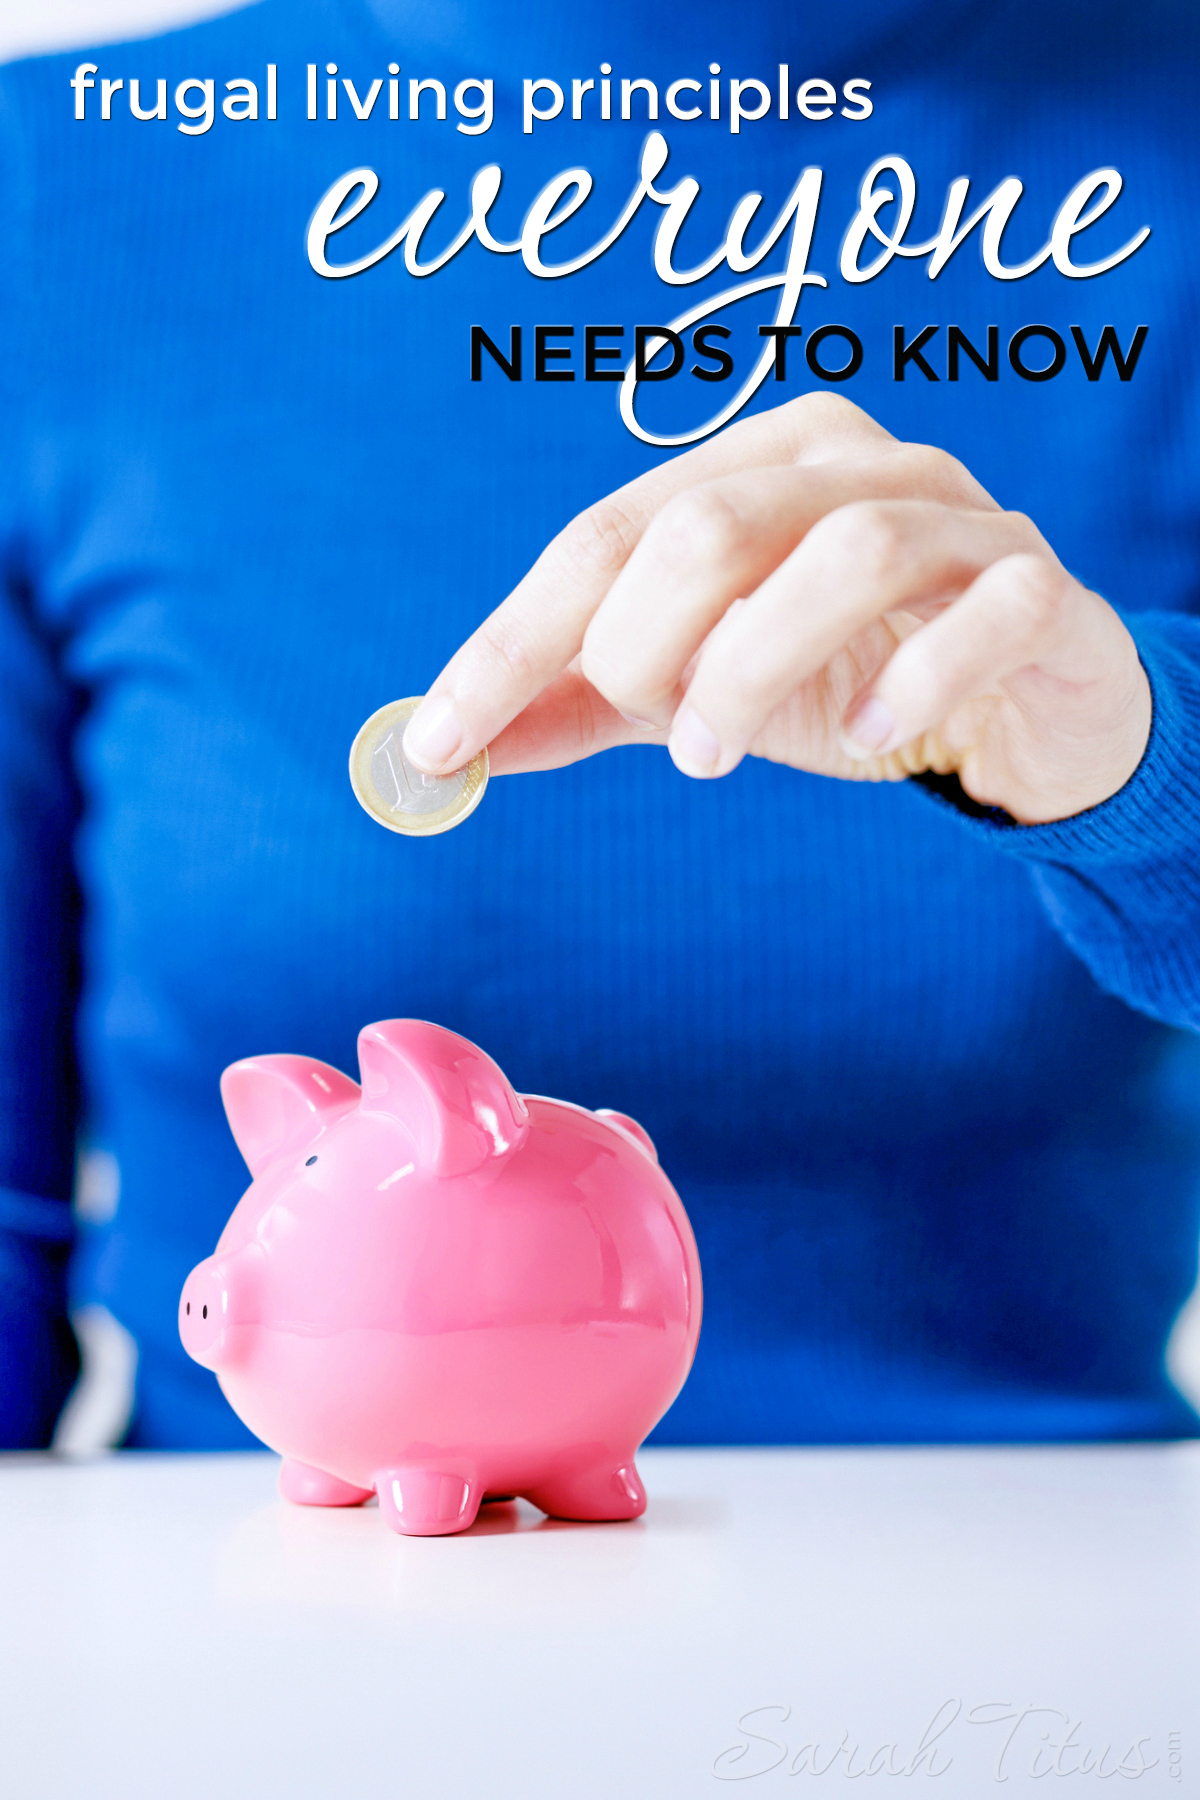 There are a lot of frugal living tips that you can read about online, but some of them may not pertain to you and your situation. Here are some universal tips and tricks that apply to everyone that you could easily start implementing now! Frugal Living Principles Everyone Needs to Know